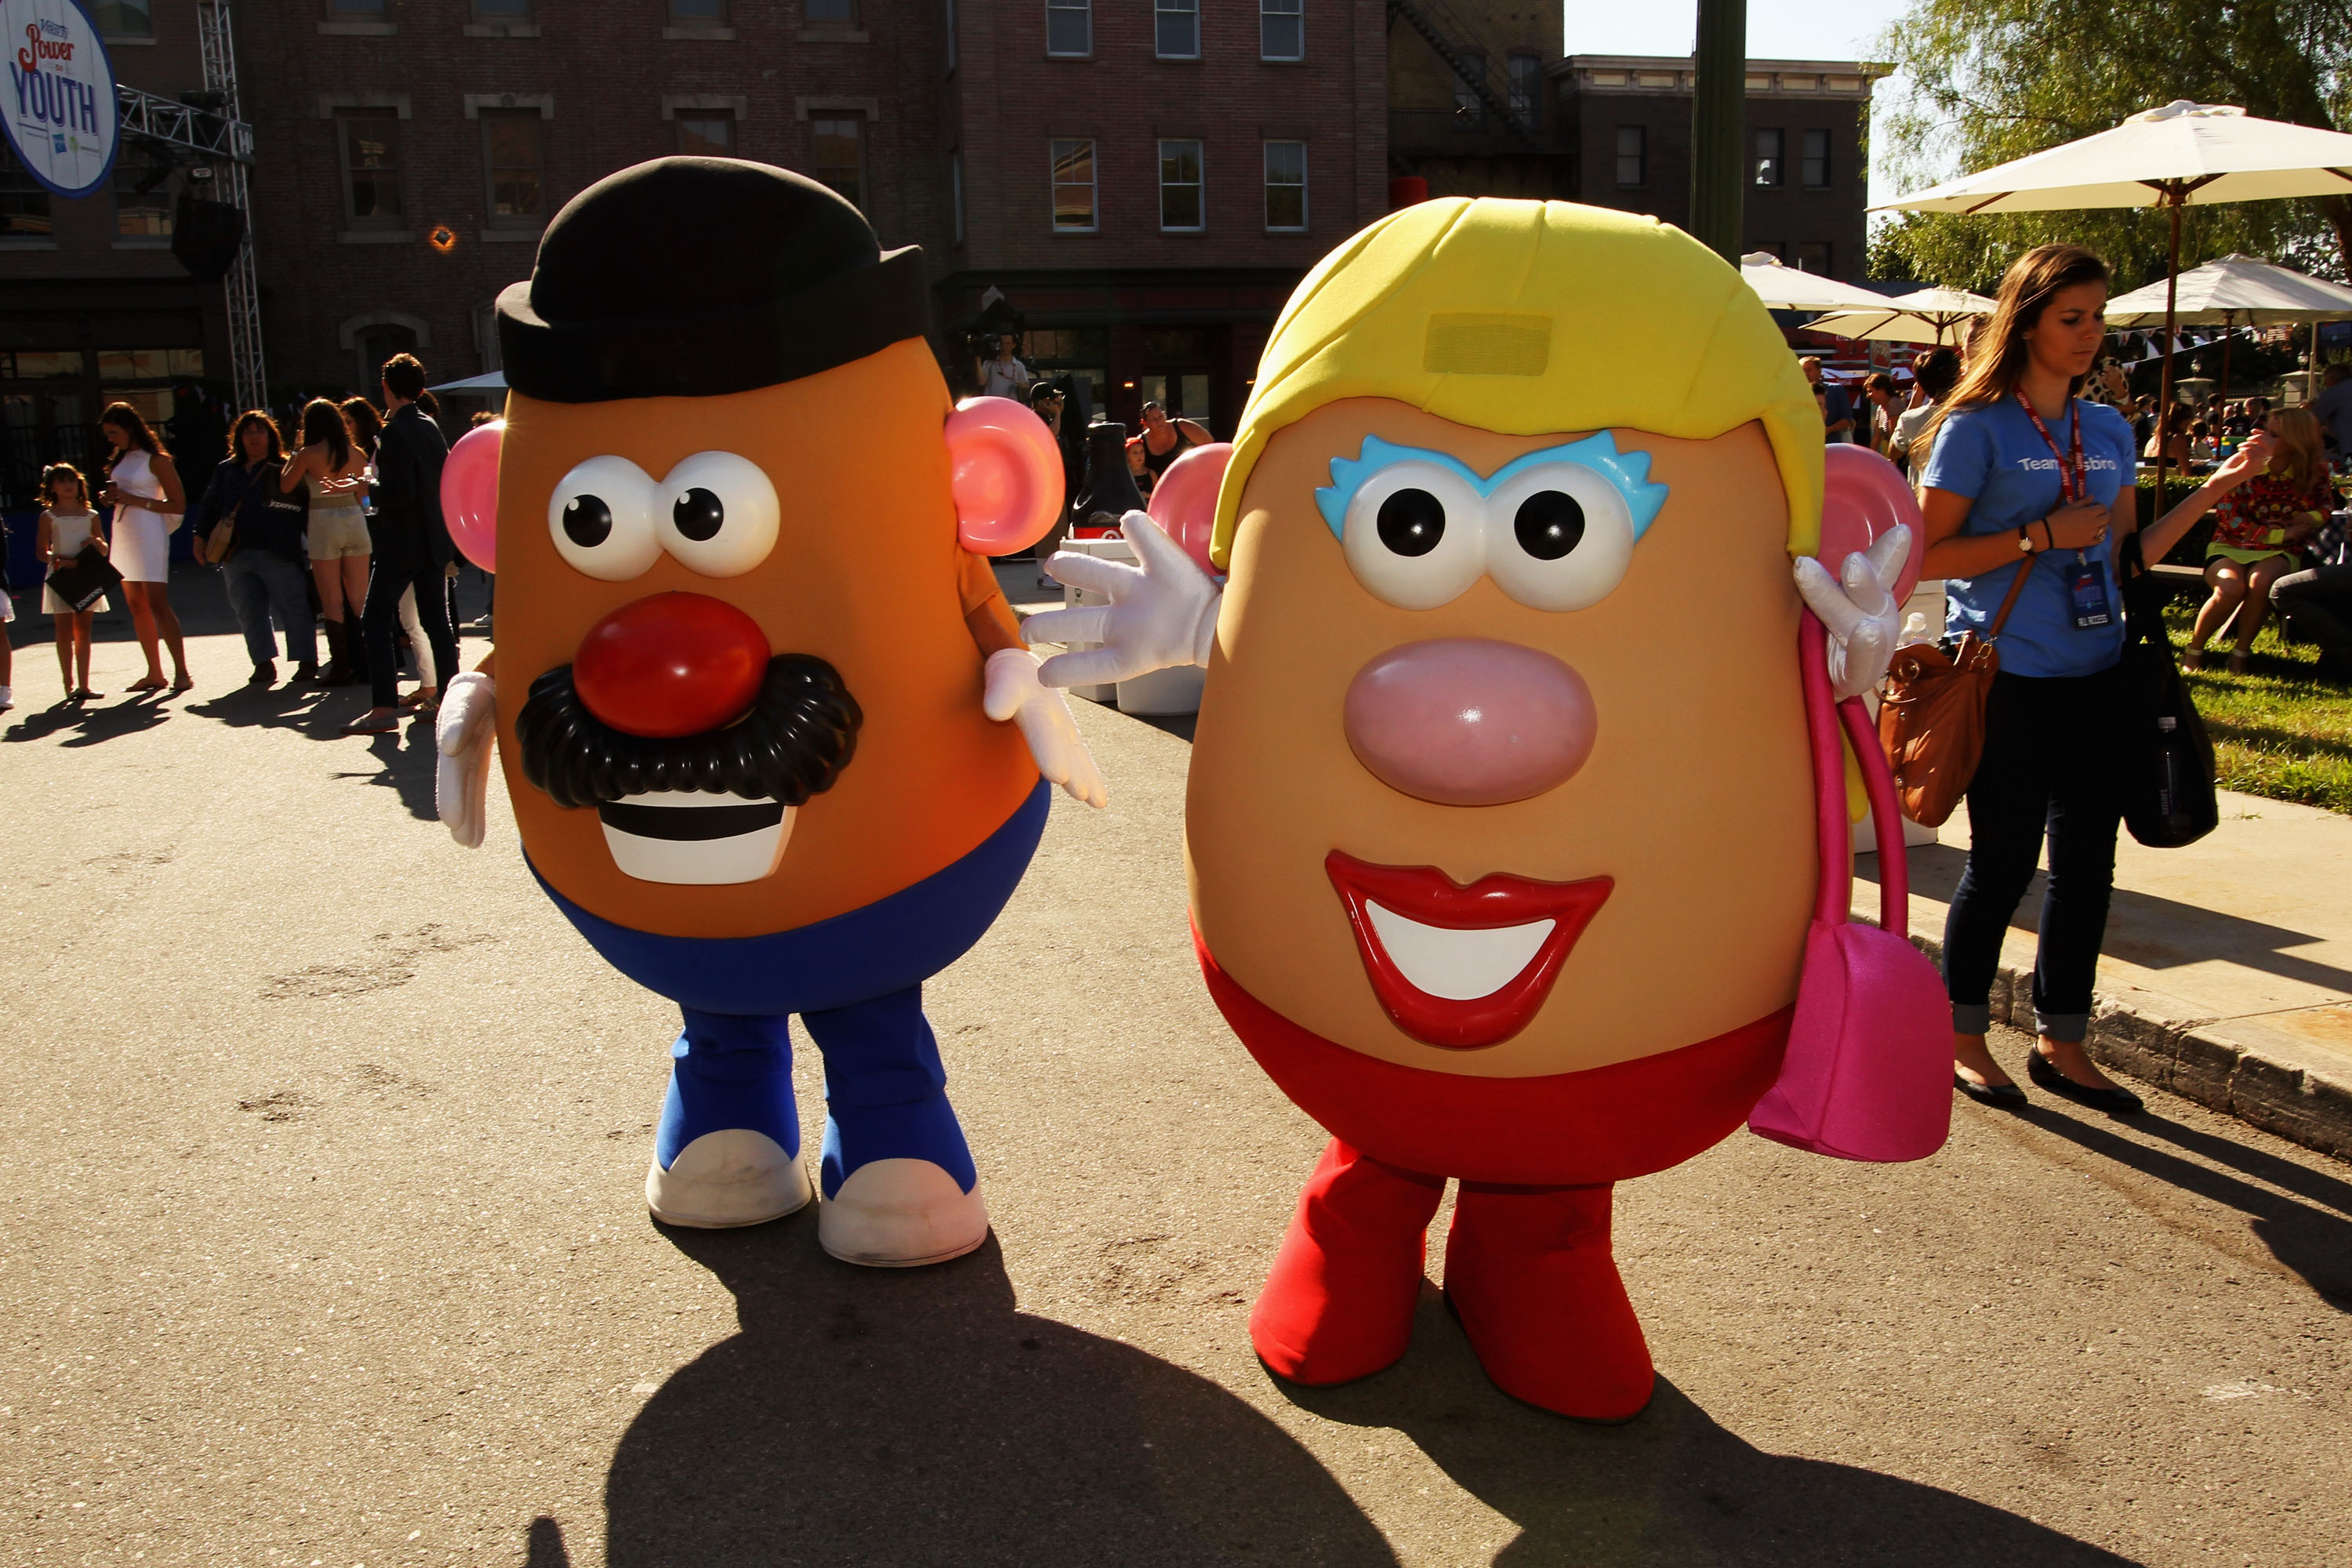 Hasbro Says That Potato Head Will Keep 'Mr.' After Outcry Over Gender-Inclusive Line - Newsweek